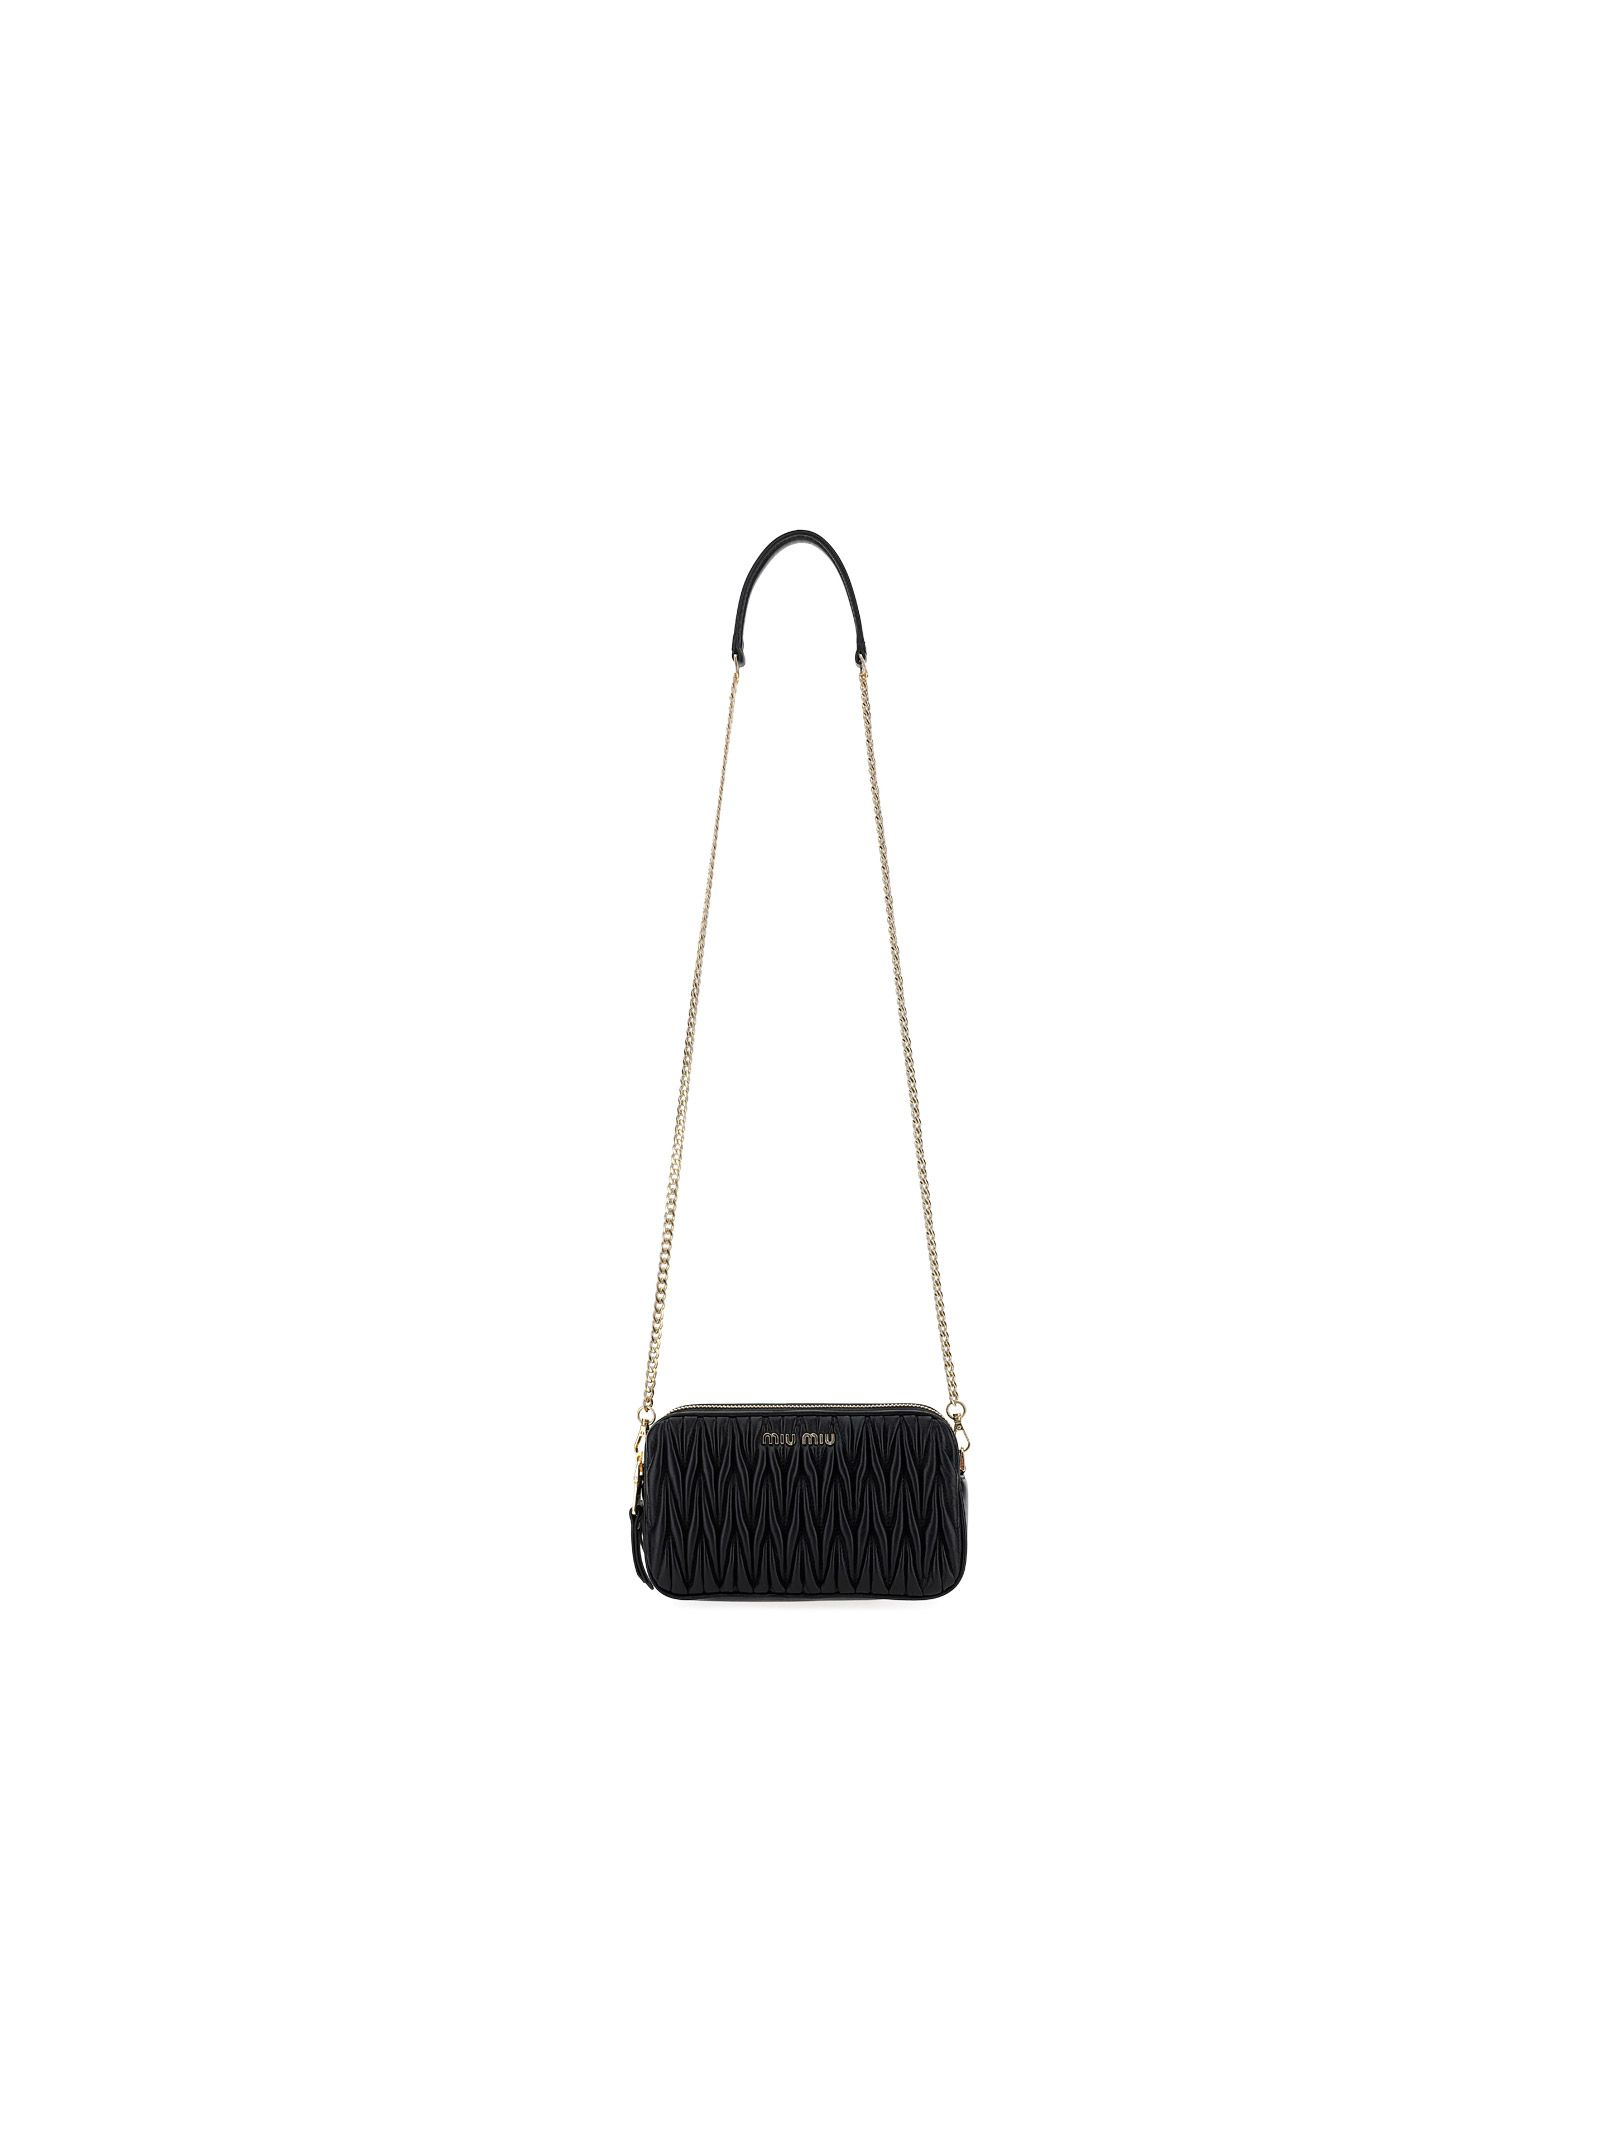 Miu Miu MIU MIU WOMEN'S 5BP045N88F0002 BLACK OTHER MATERIALS SHOULDER BAG